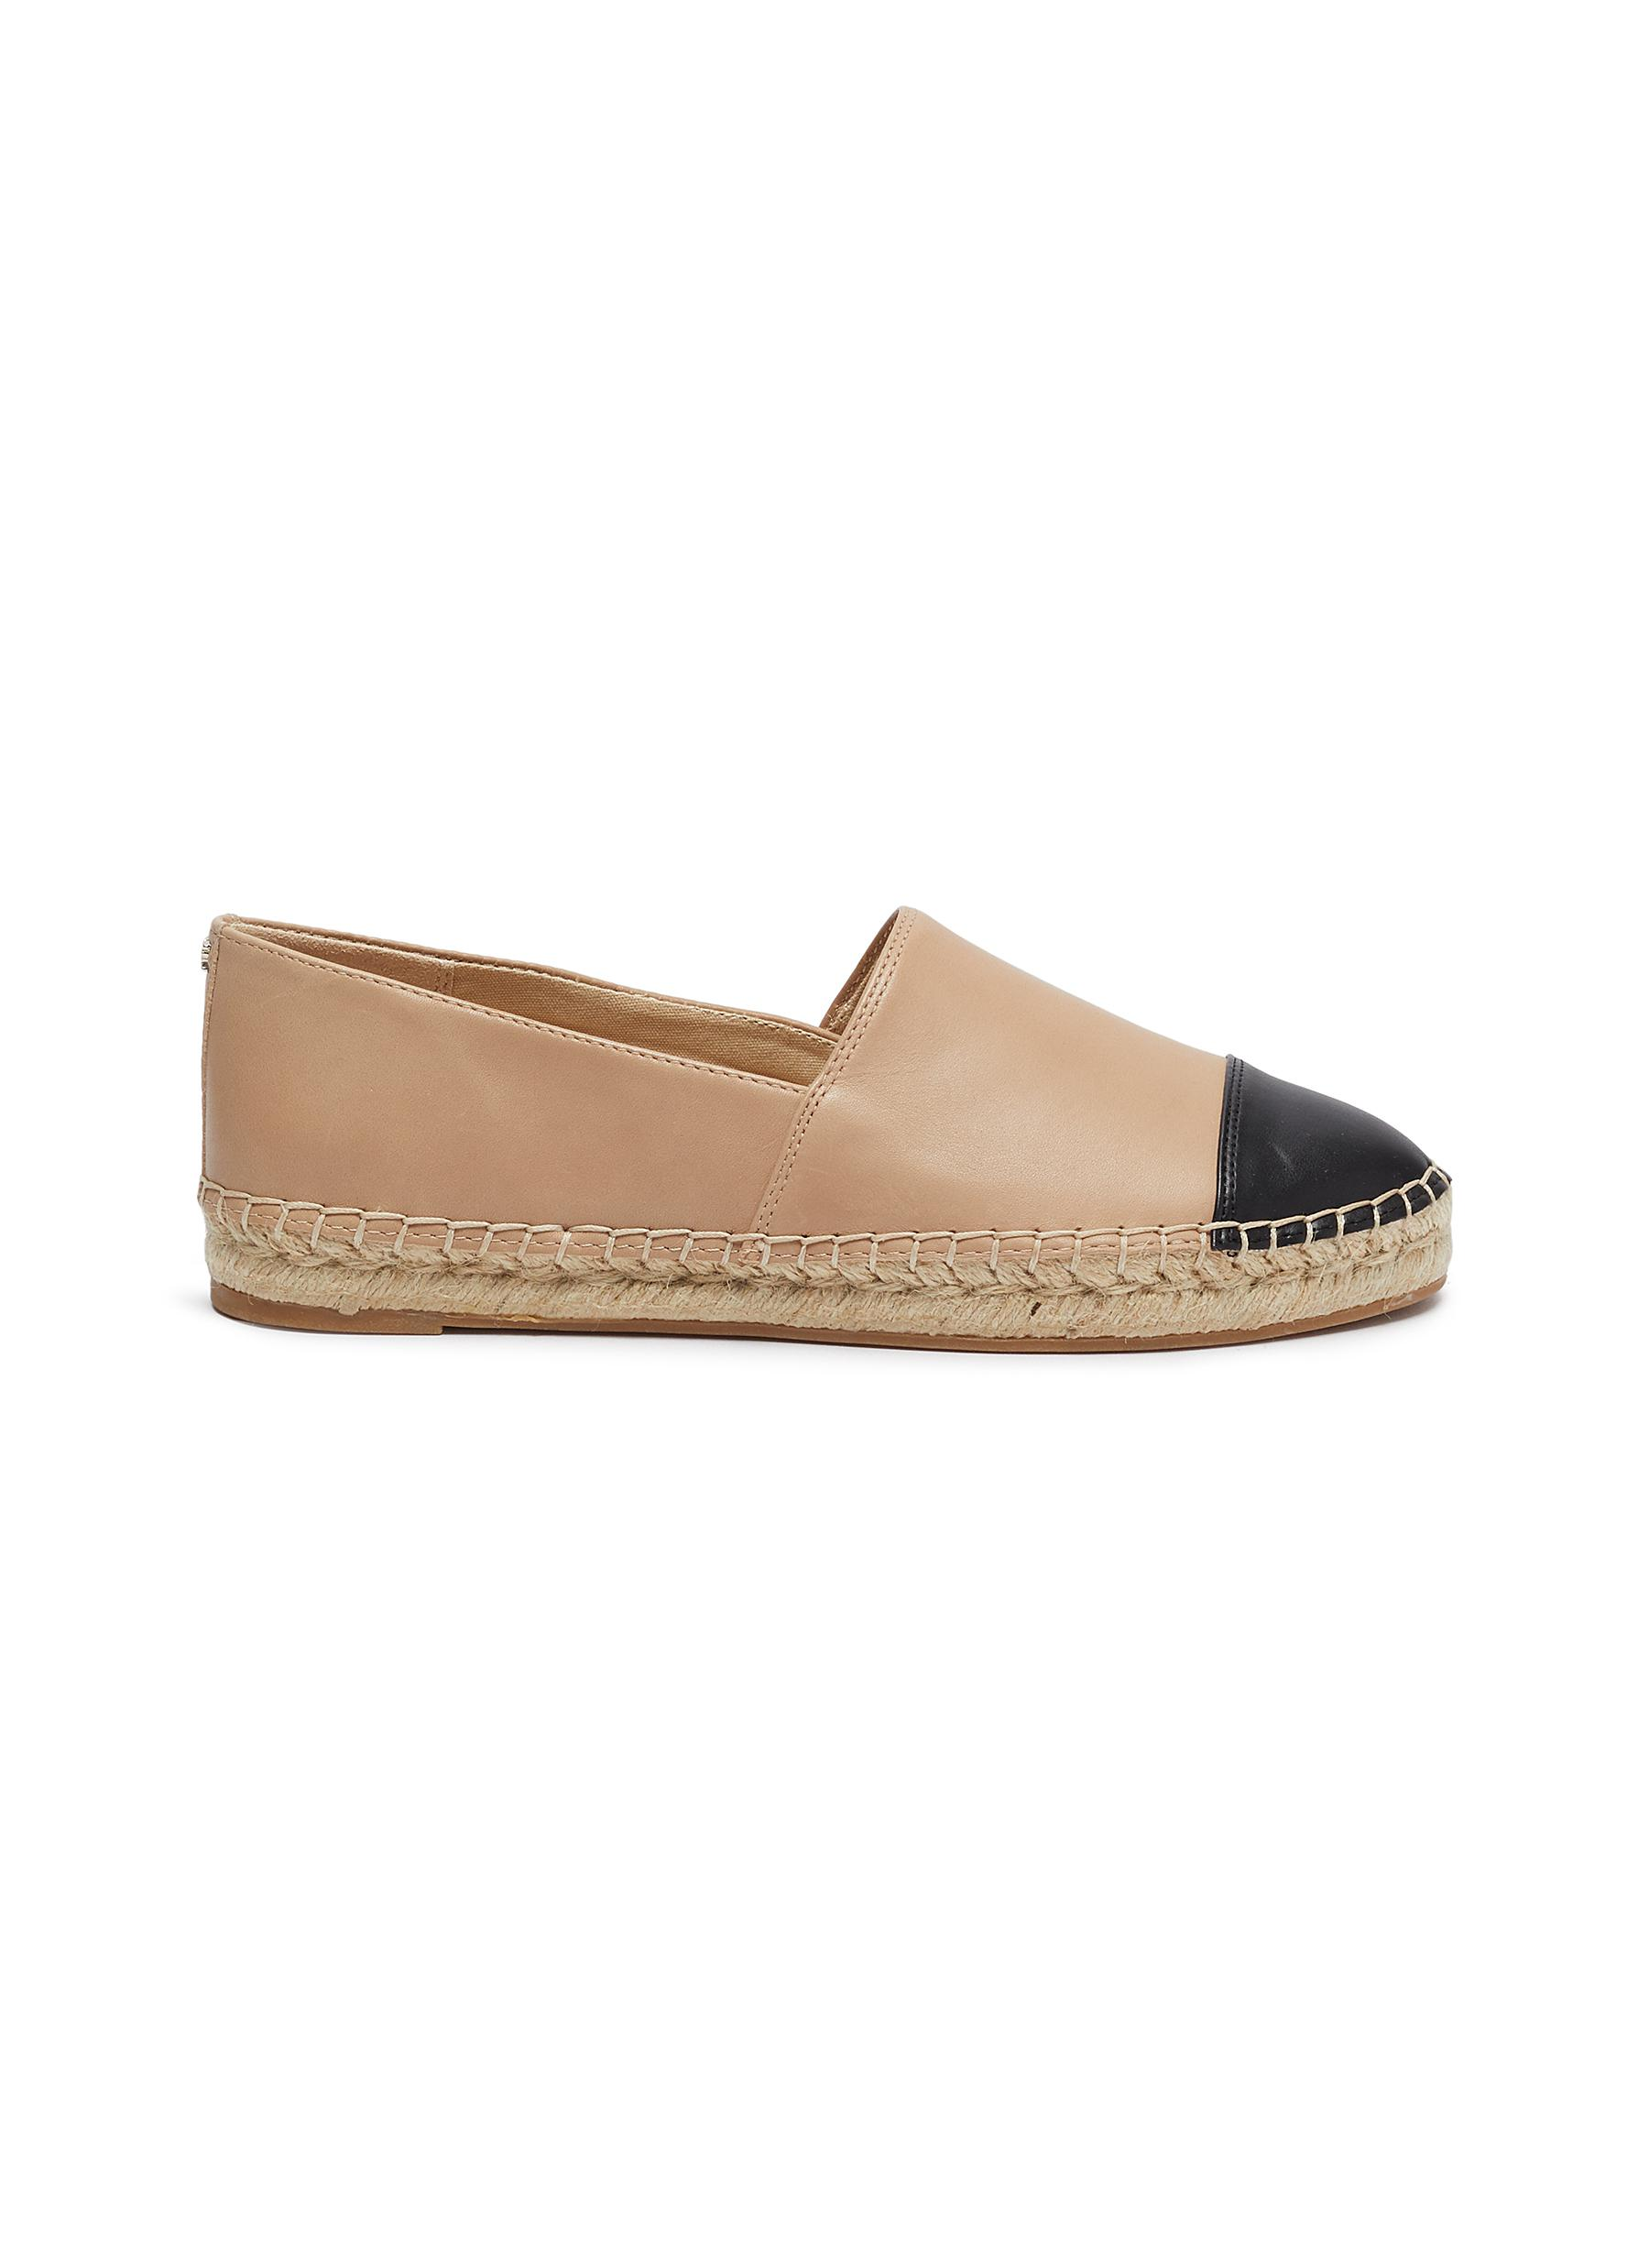 Krissy contrast toe leather espadrilles by Sam Edelman